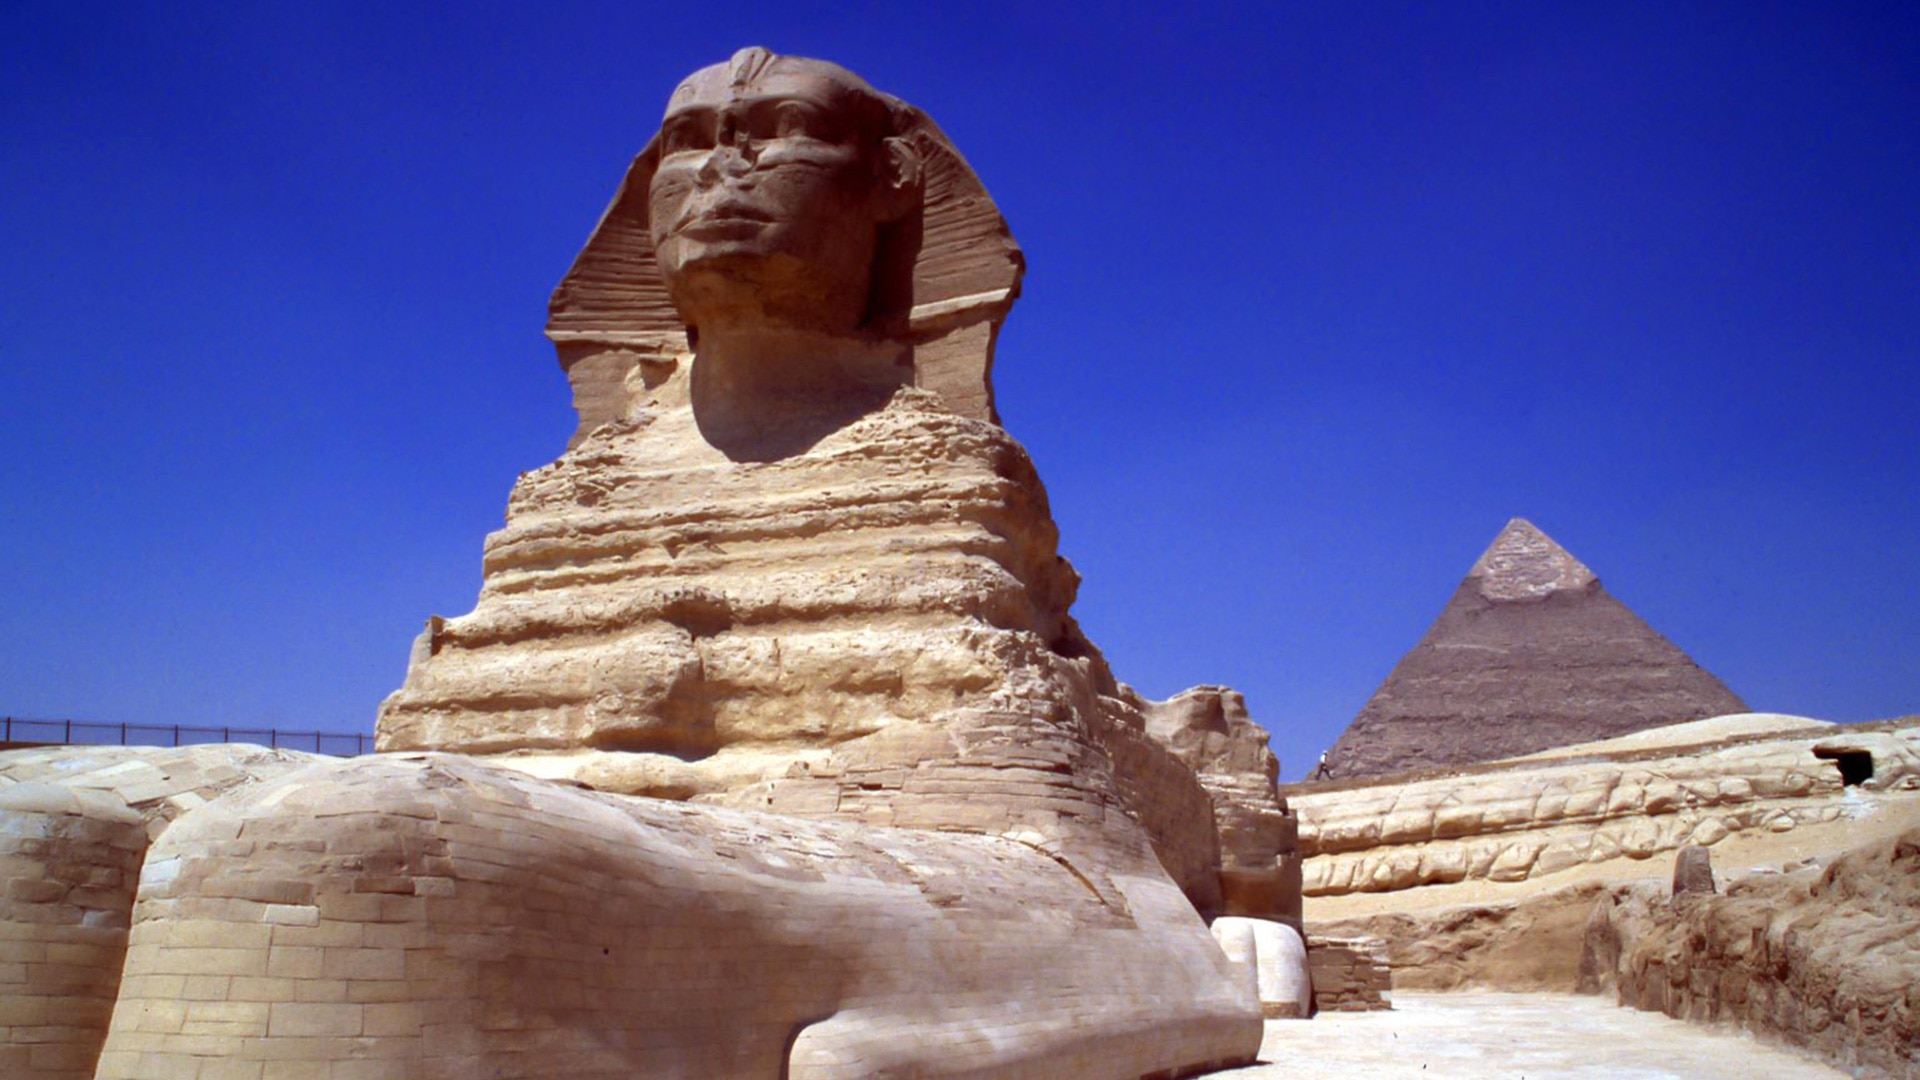 Egypt's Great Pyramid: The New Evidence - On Demand - All 4